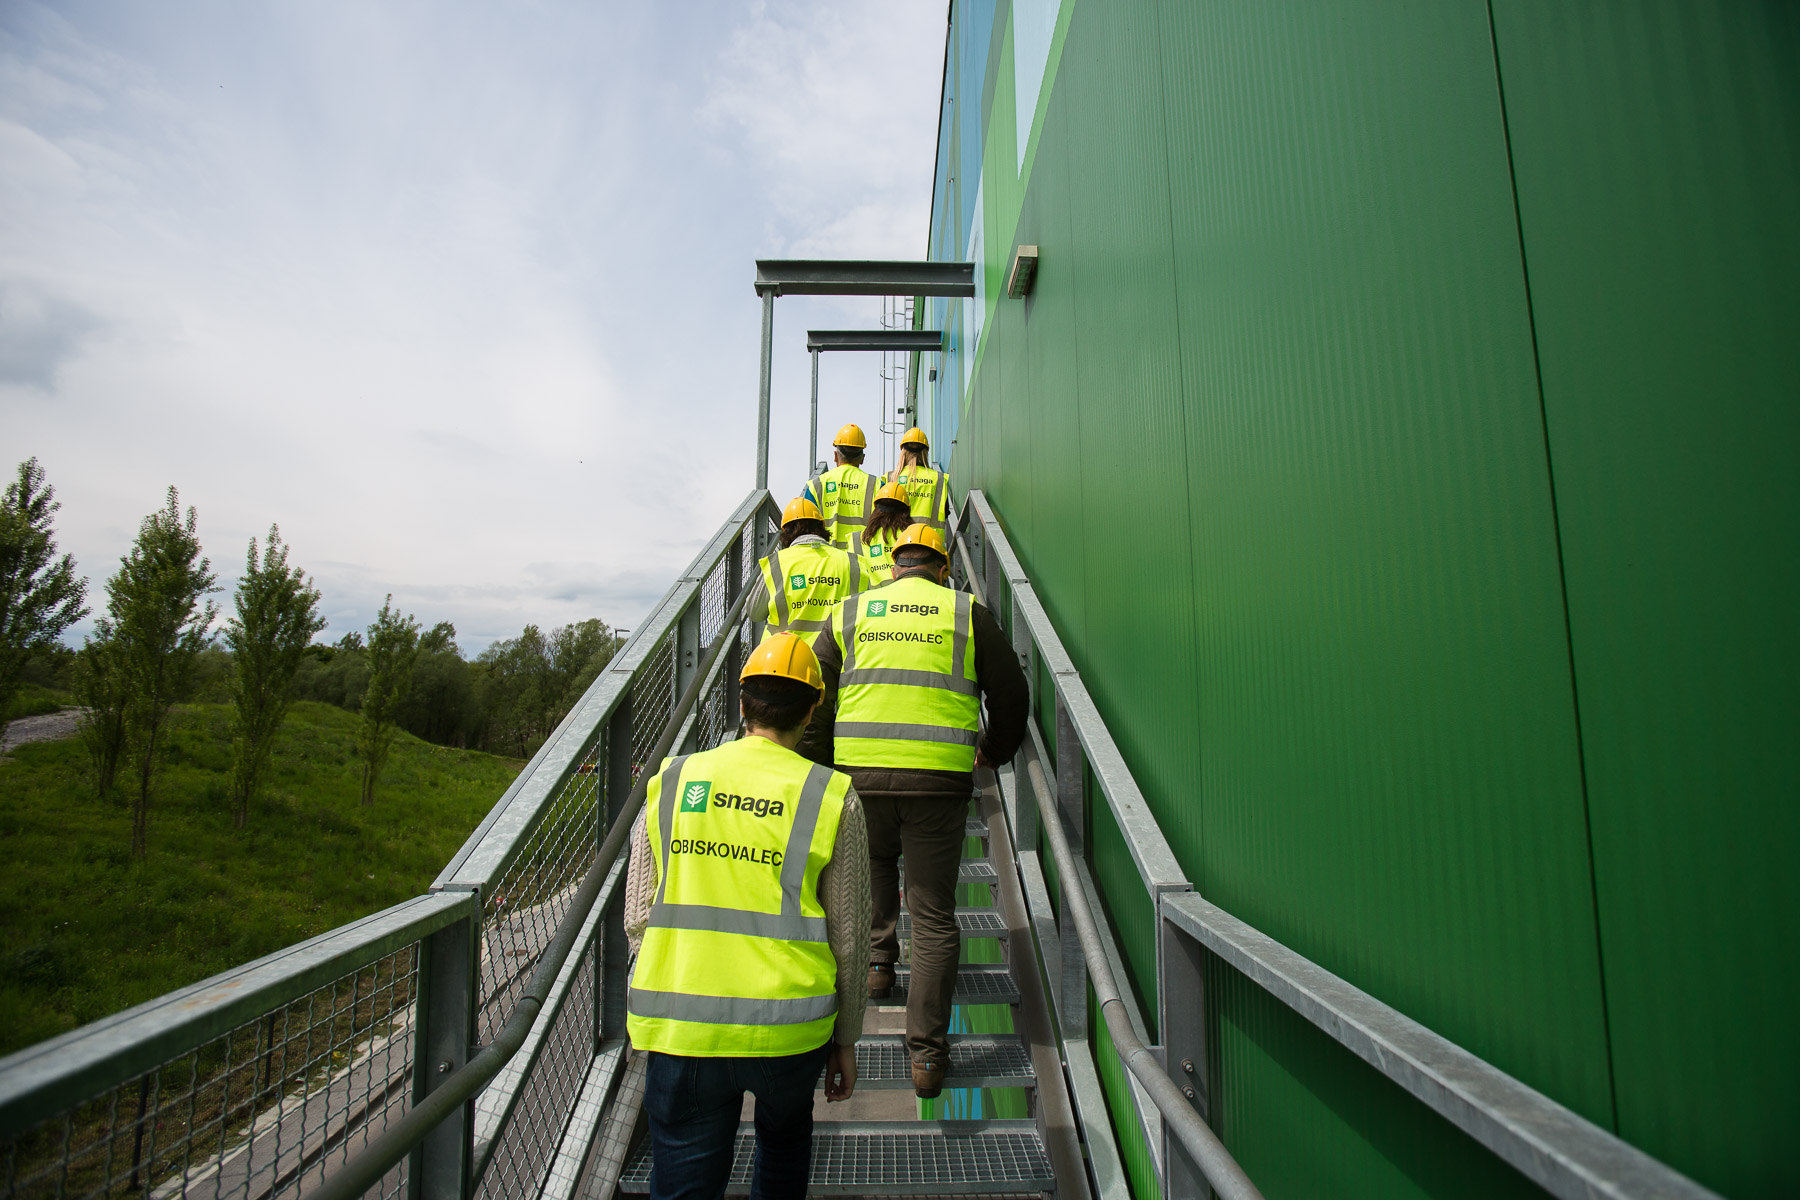 International guests visit the RCERO Ljubljana mechanical biological treatment plant on their zero waste study tour of Slovenia organized by Zero Waste Europe on May 8, 2019.